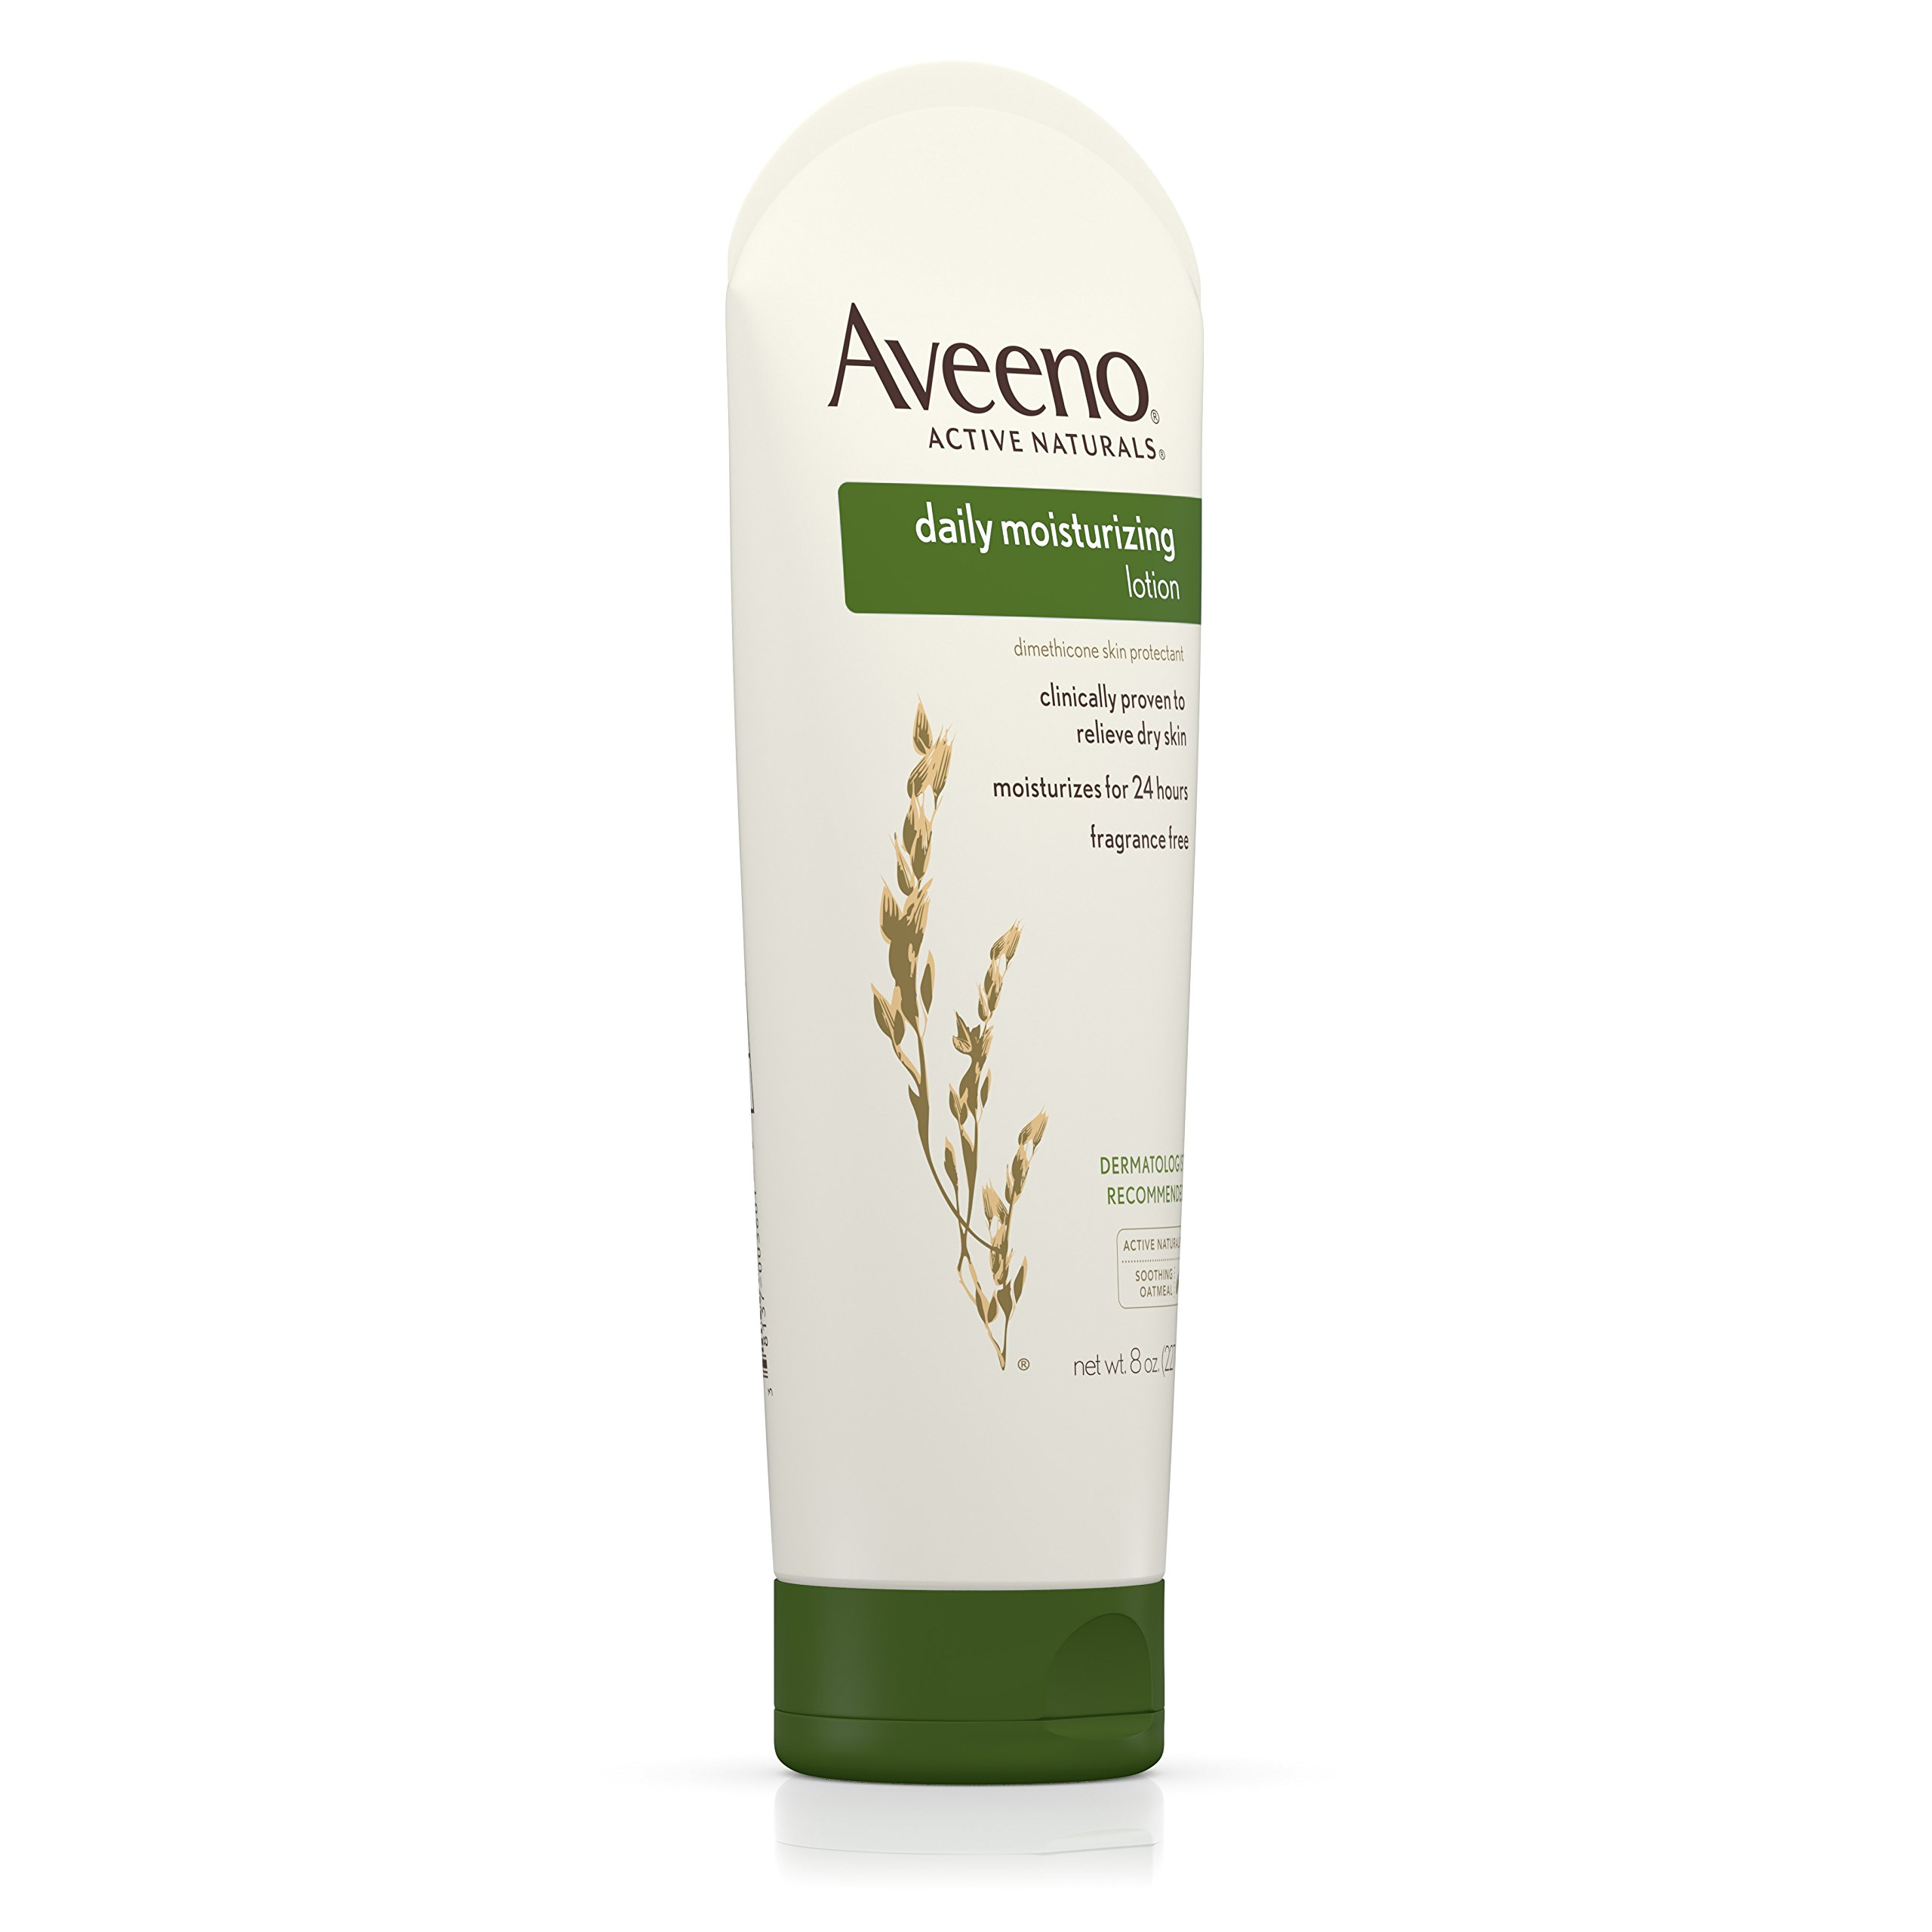 Aveeno Daily Moisturizing Lotion To Relieve Dry Skin, 8 Fl. Oz